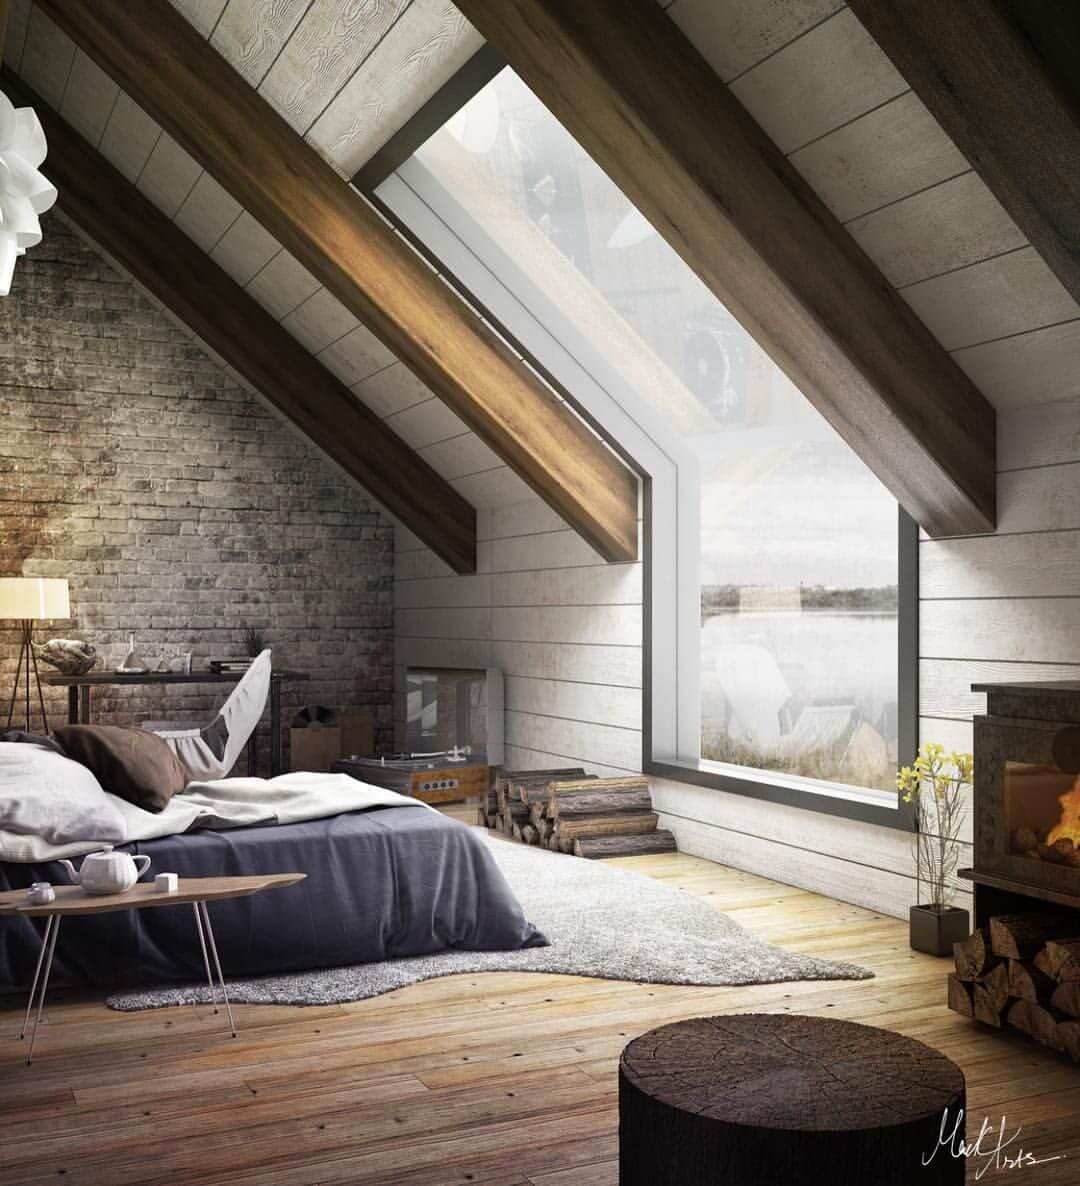 16 Enthralling Attic Designs That Will Astonish You